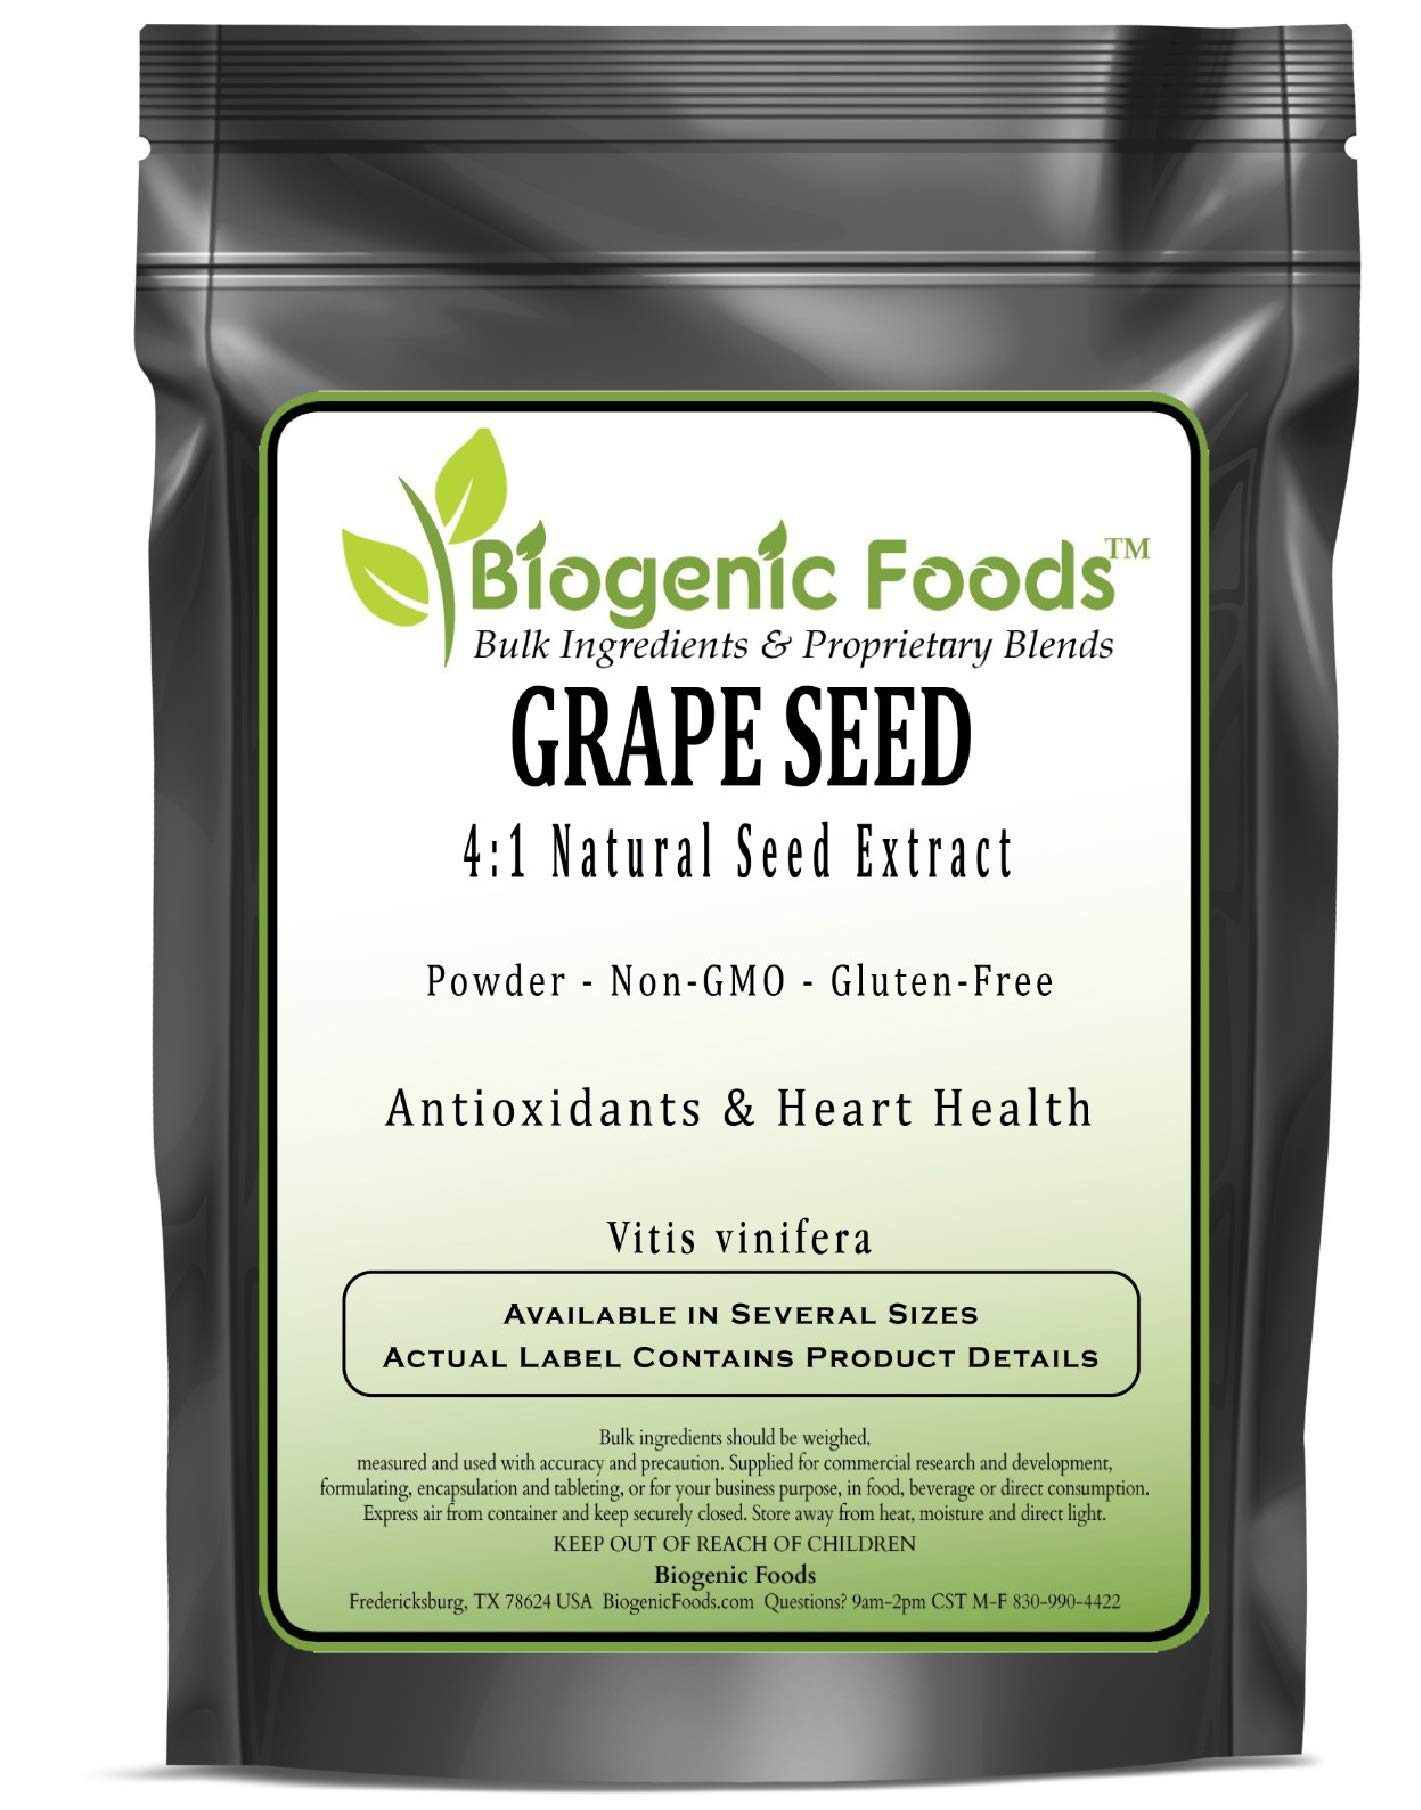 Grape Seed - 4:1 Natural Seed Powder Extract (VIT is vinifera), 2 kg